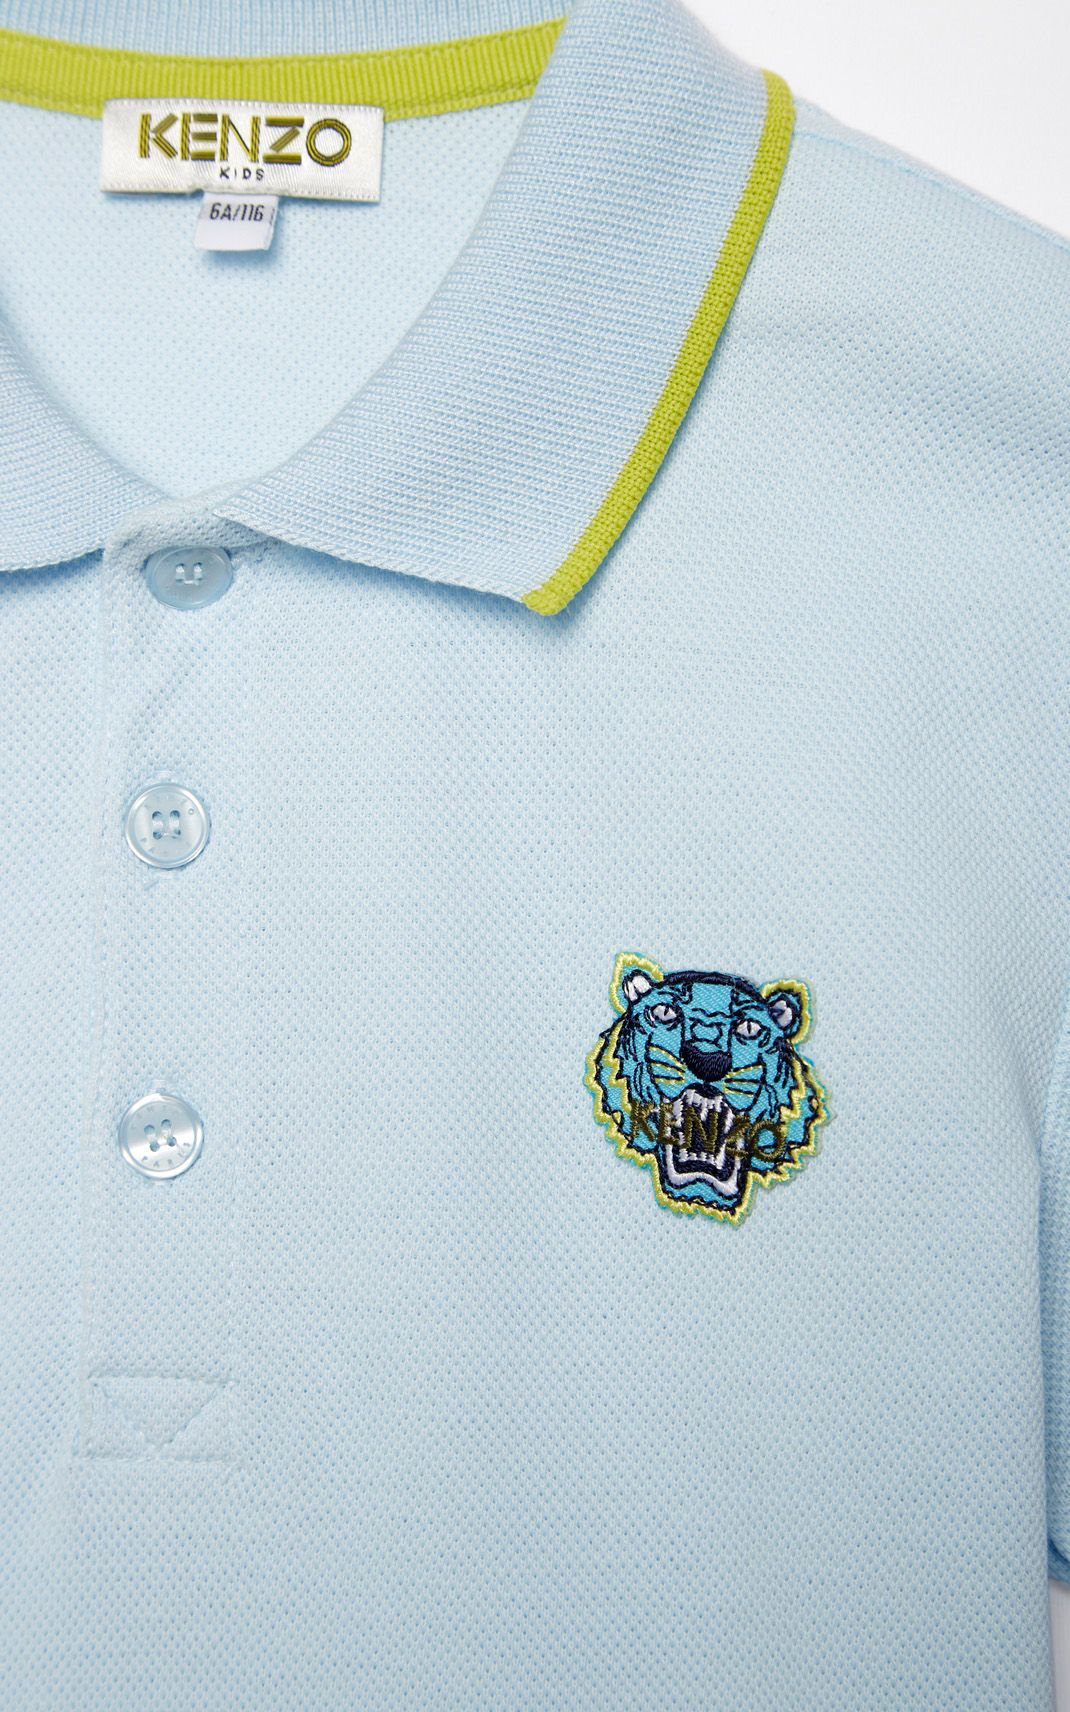 19bc09038 LIGHT BLUE Tiger polo shirt for men KENZO | Kenzo Summer 18 ...